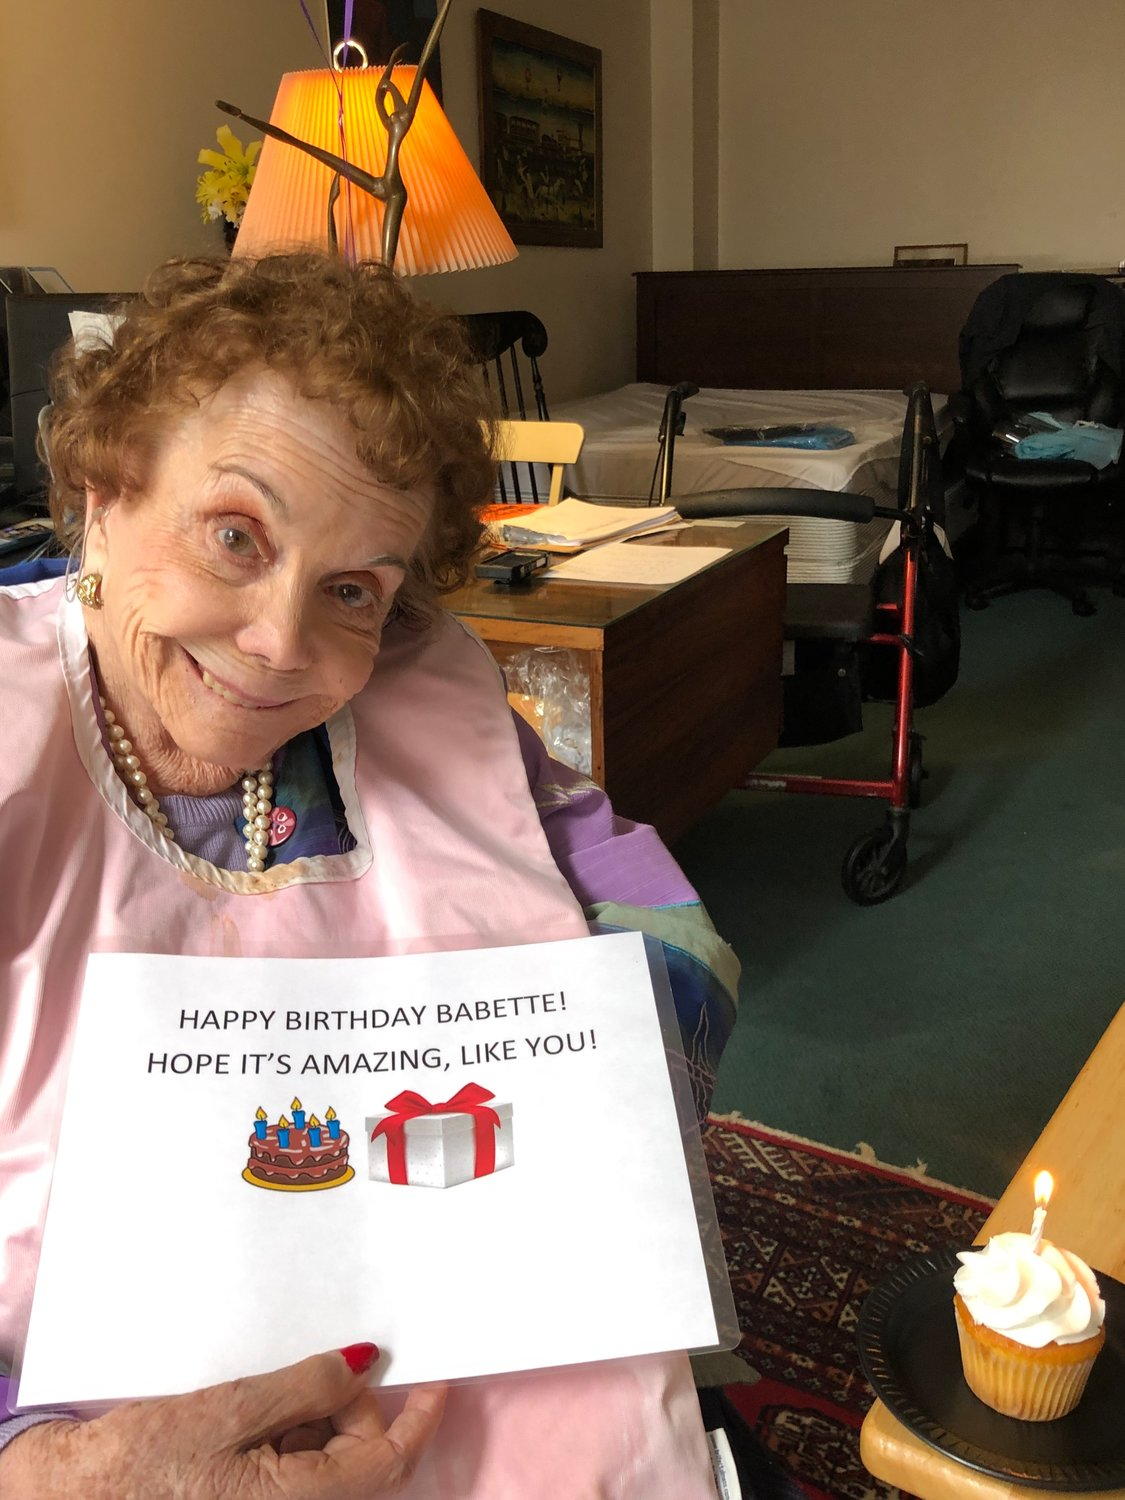 Babette Cohen turned 95 and was able to celebrate with a personalized birthday party from The Regency and a Zoom call with her family.